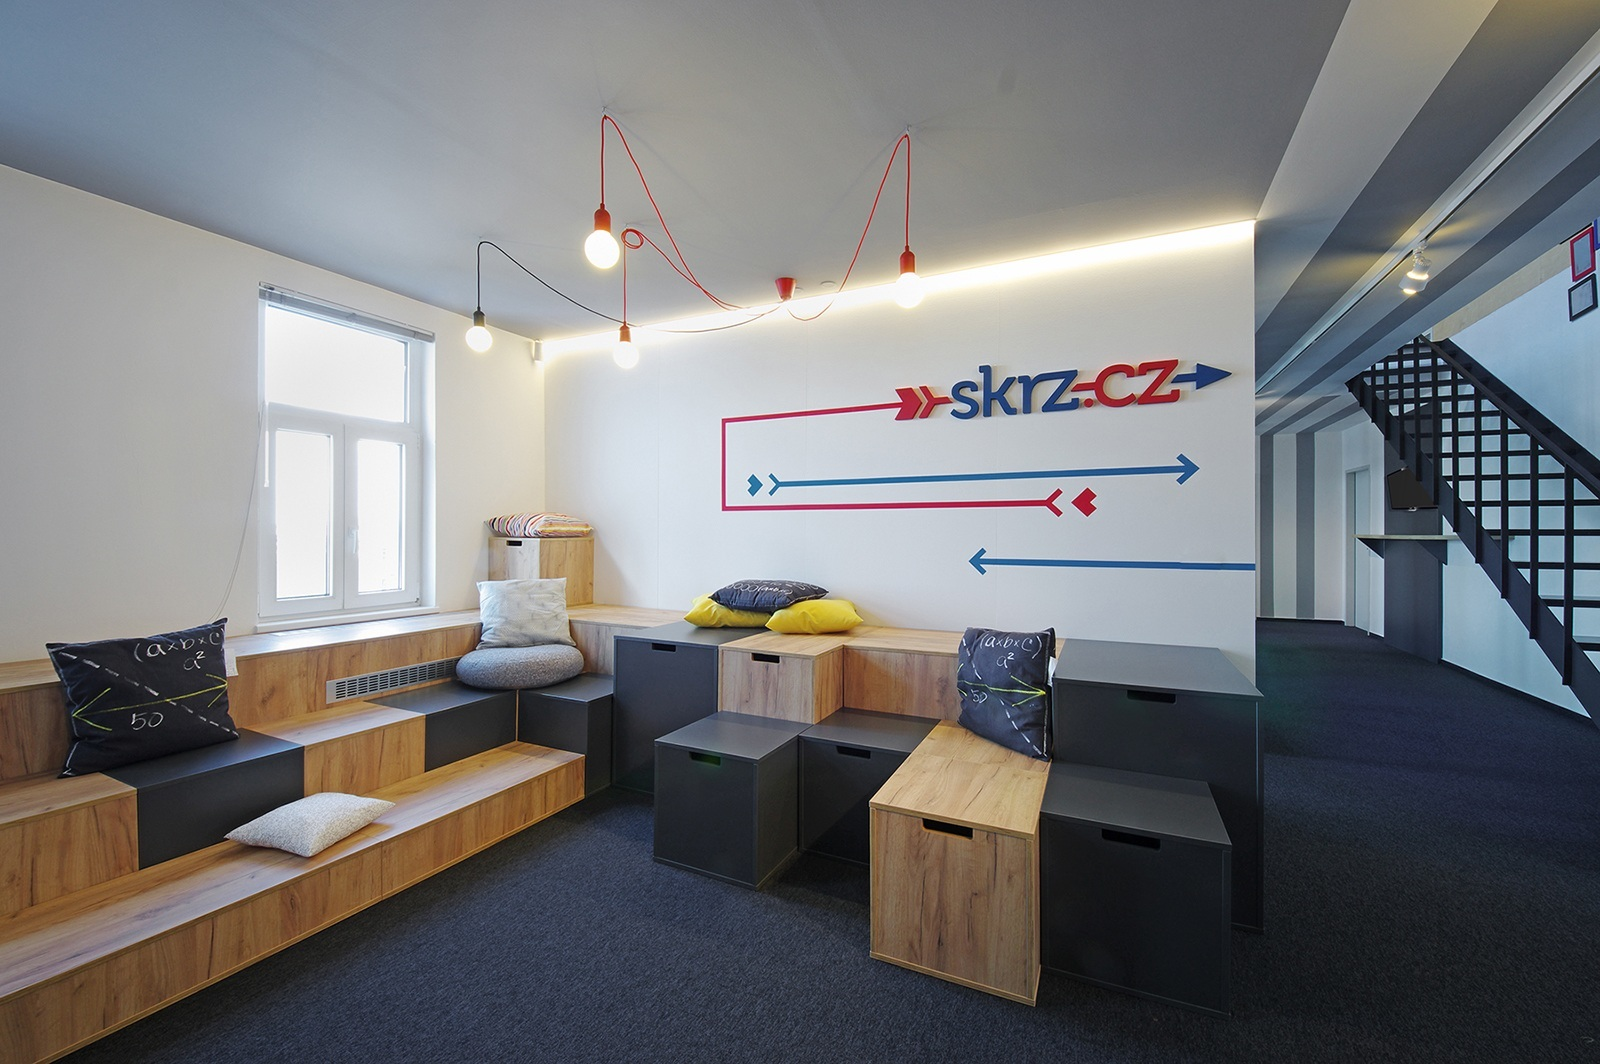 A Look Inside the New Headquarters of Skrz in Prague